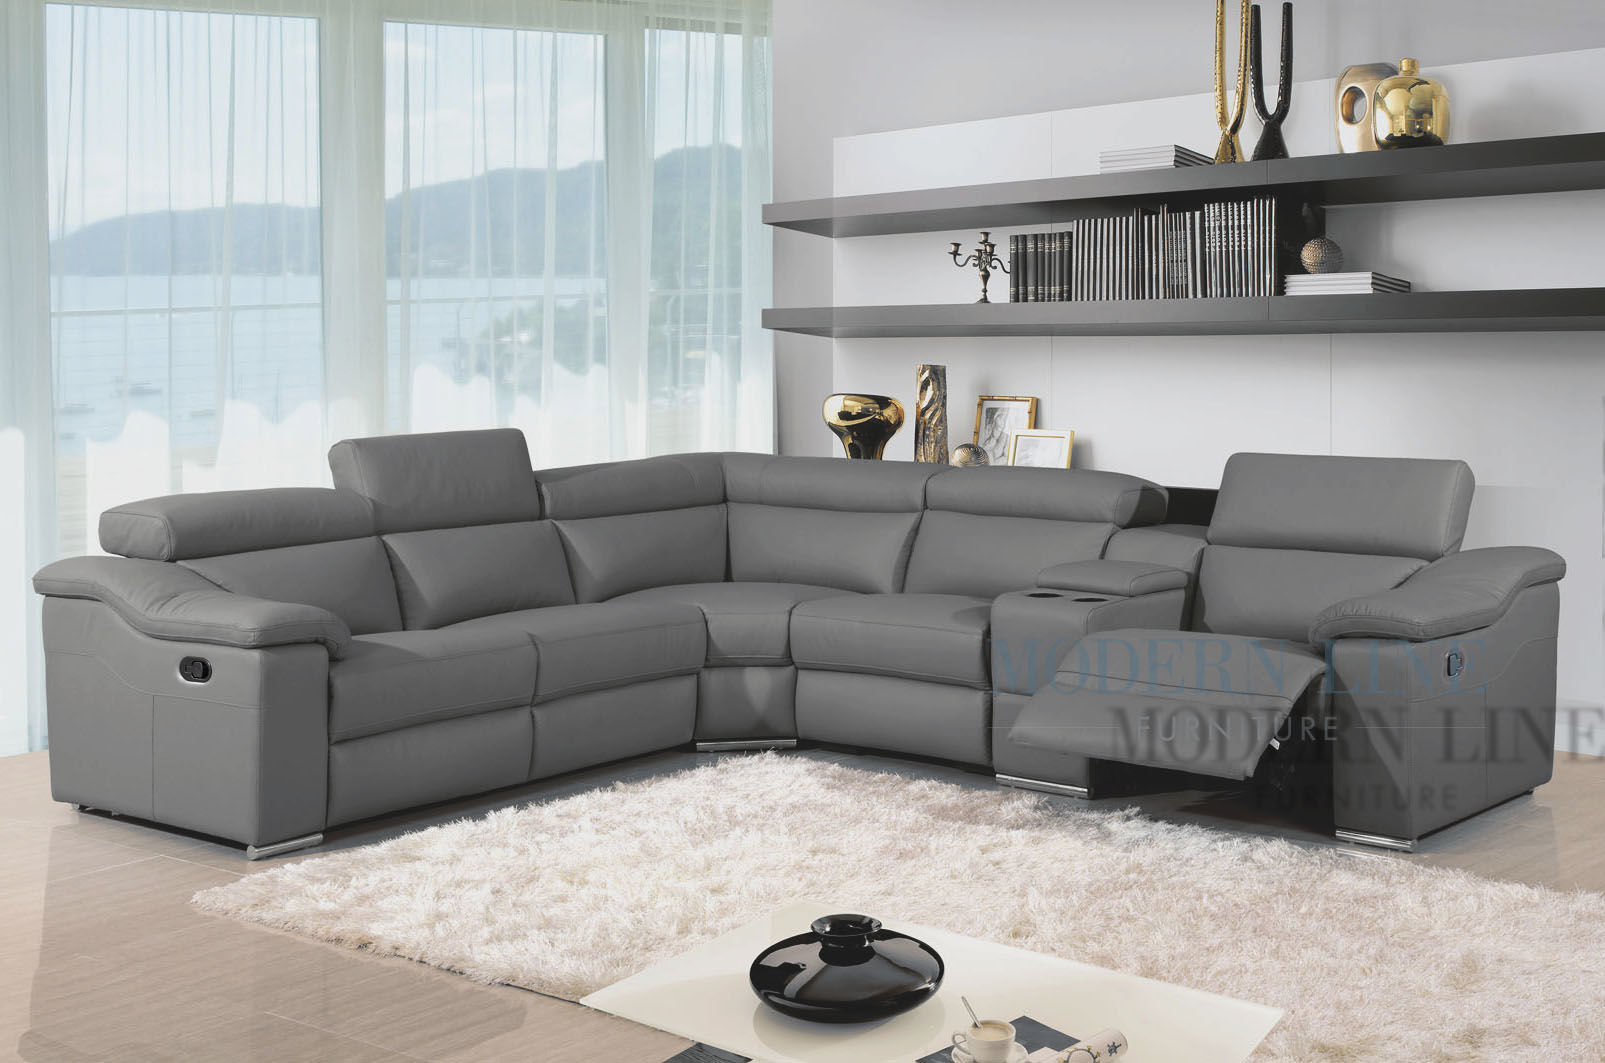 fancy oversized sectional sofas gallery-Lovely Oversized Sectional sofas Portrait